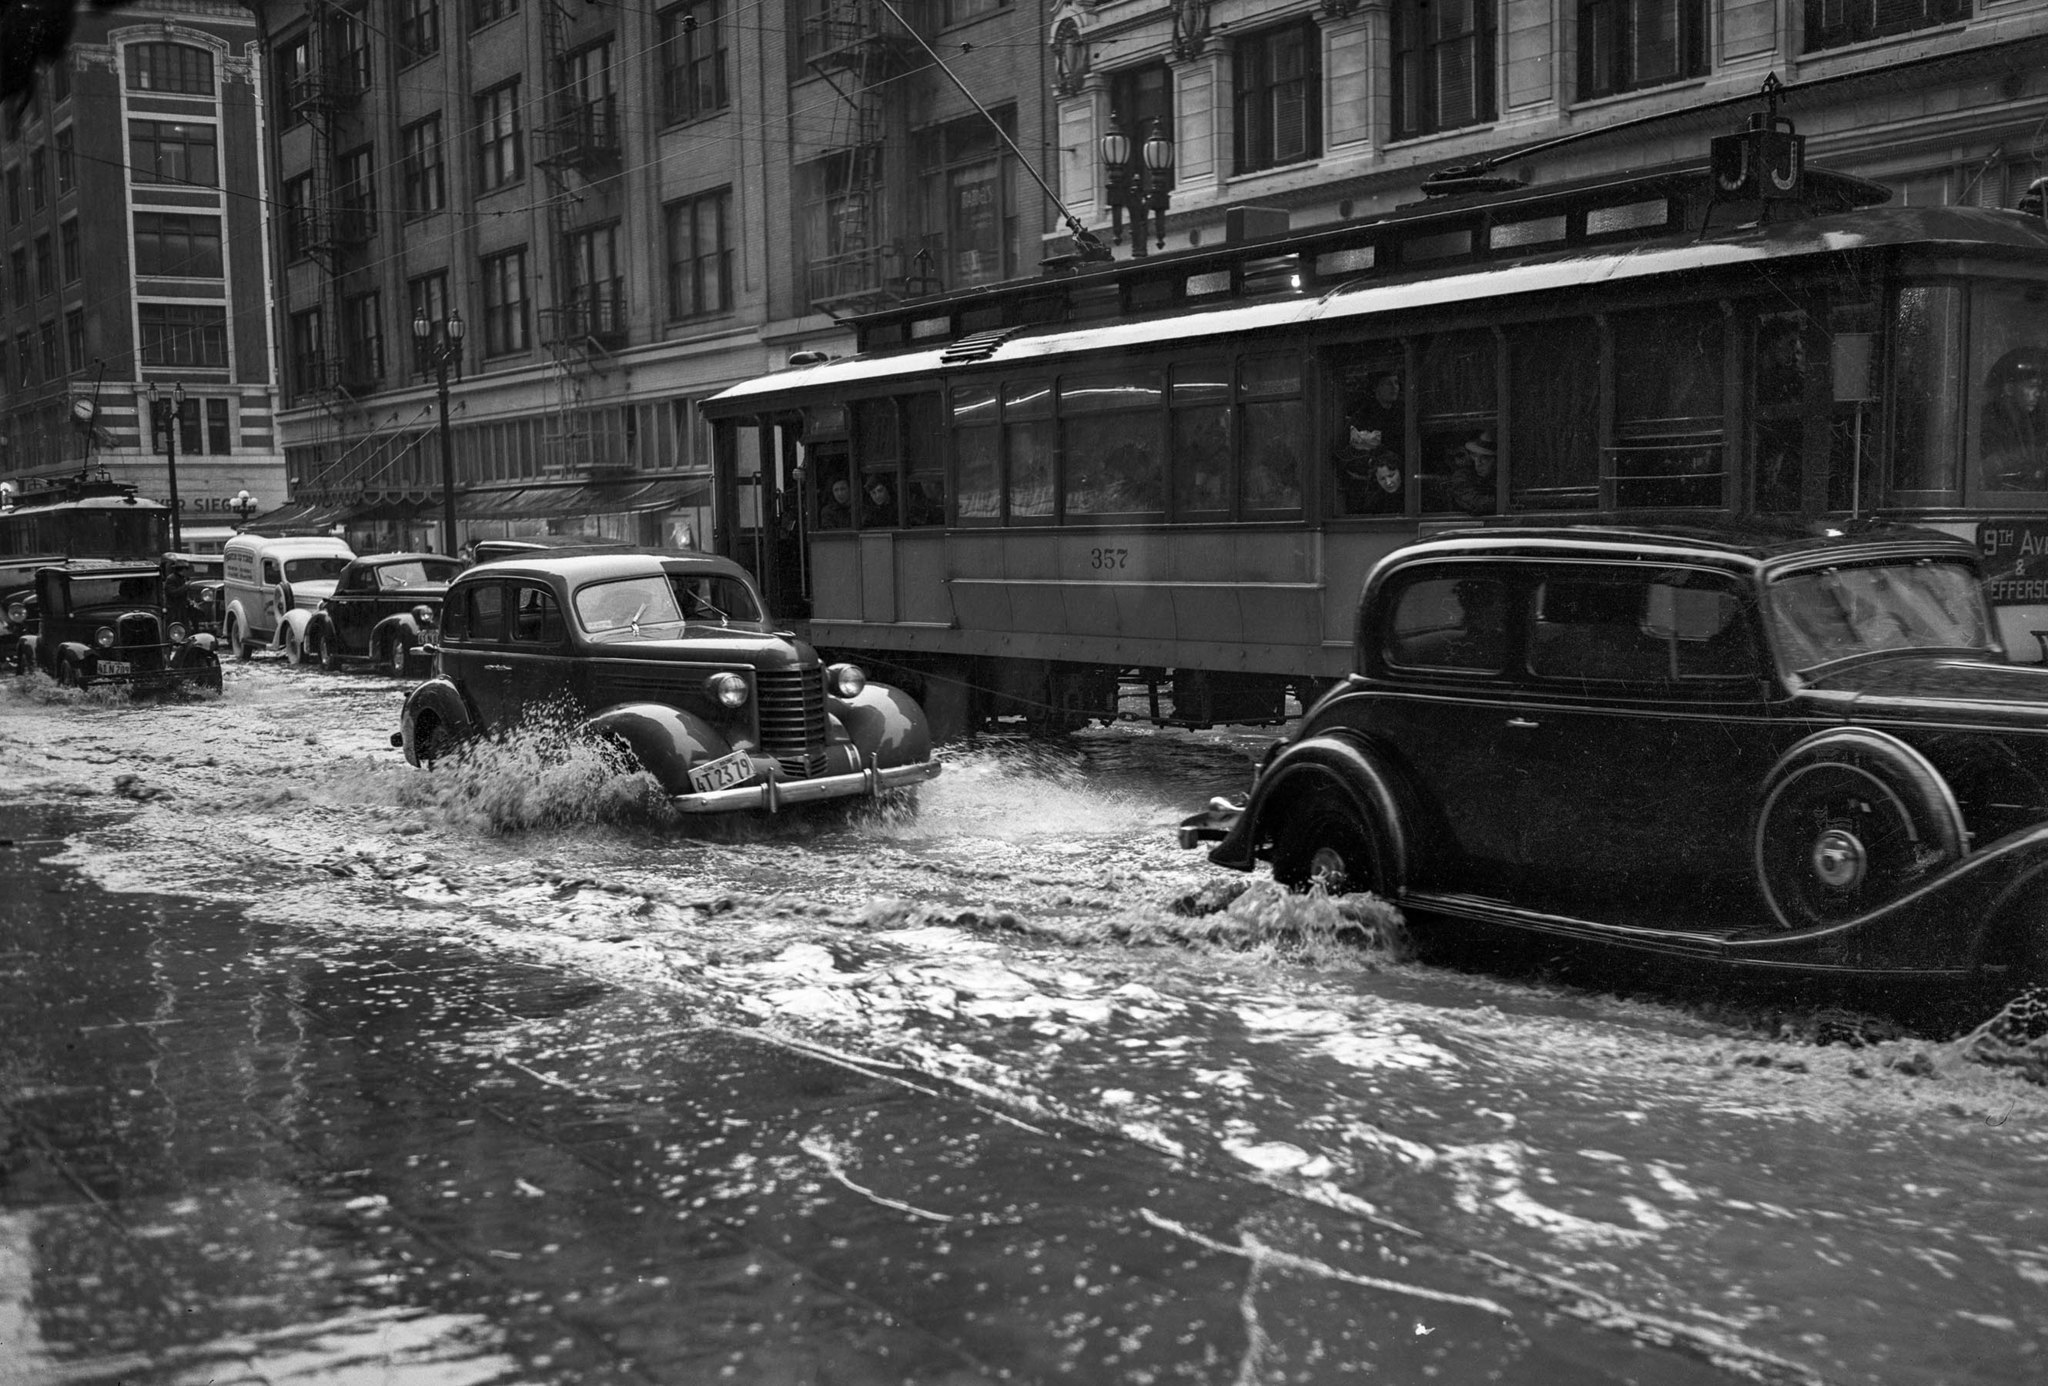 March 2, 1938: Drains could not keep up with rain filling streets in downtown Los Angeles. This phot